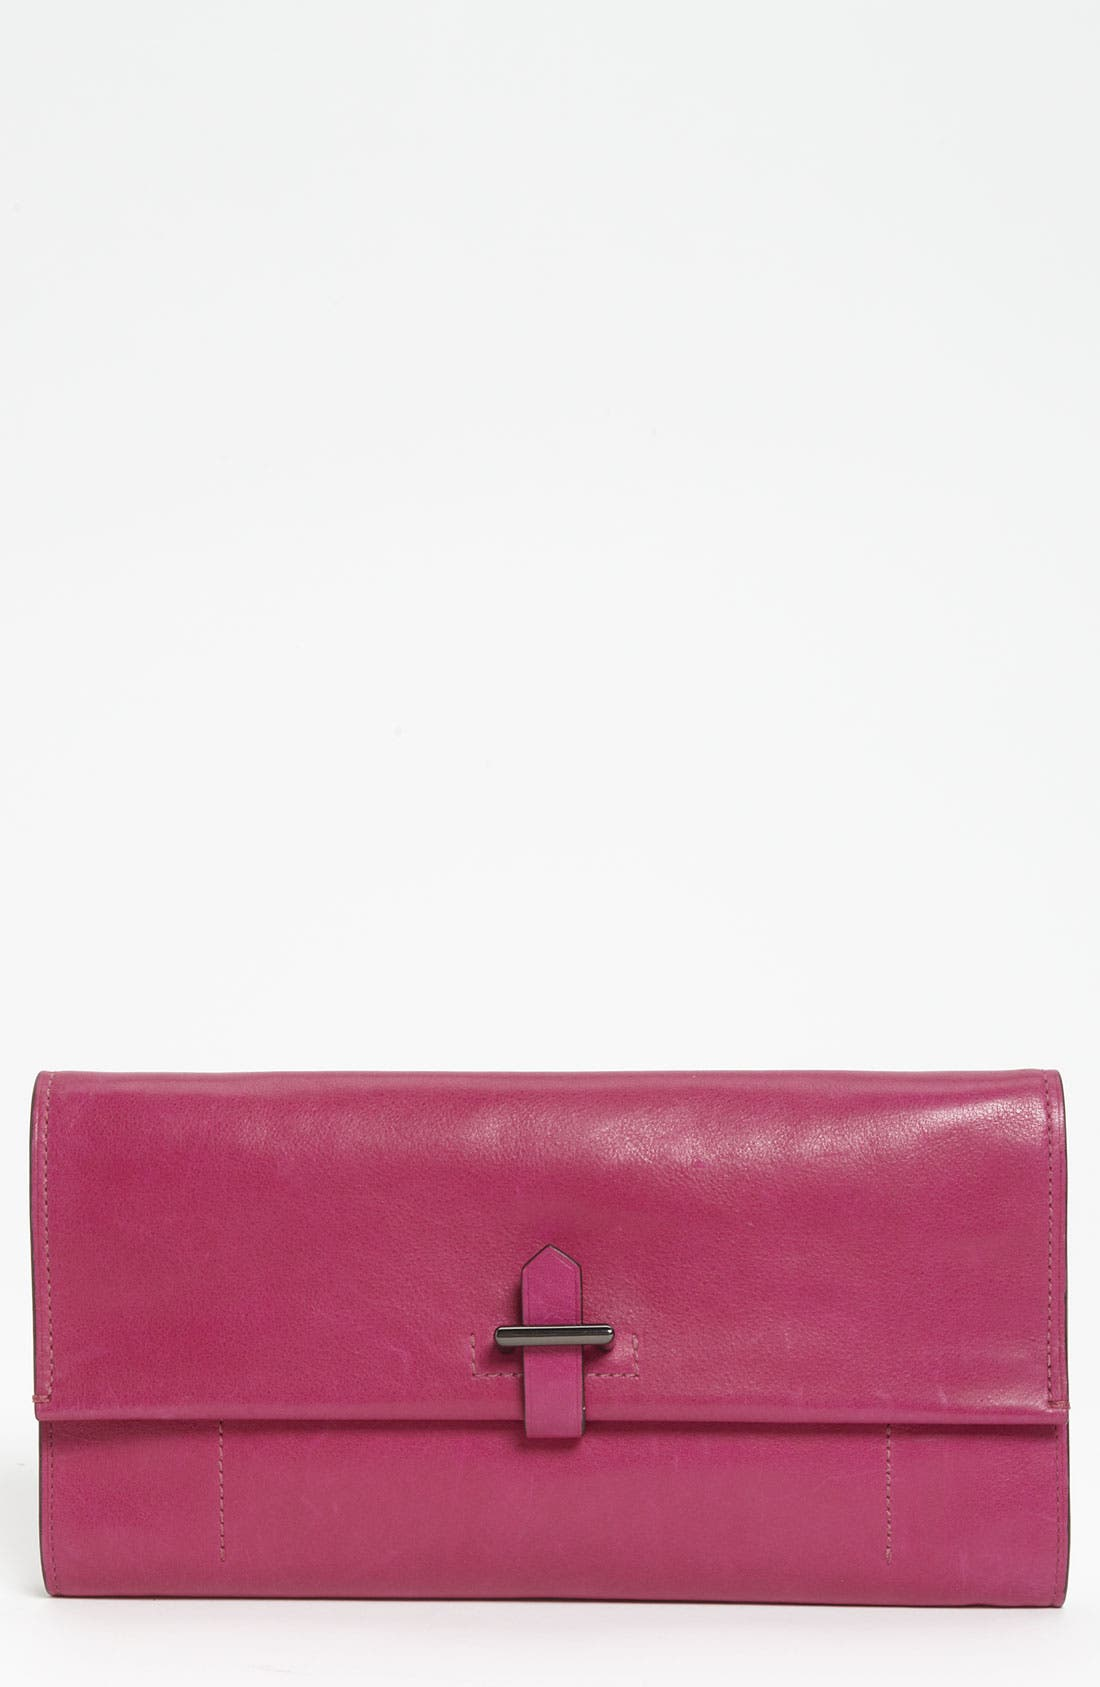 Alternate Image 1 Selected - Reed Krakoff 'Standard' Hasp Clutch